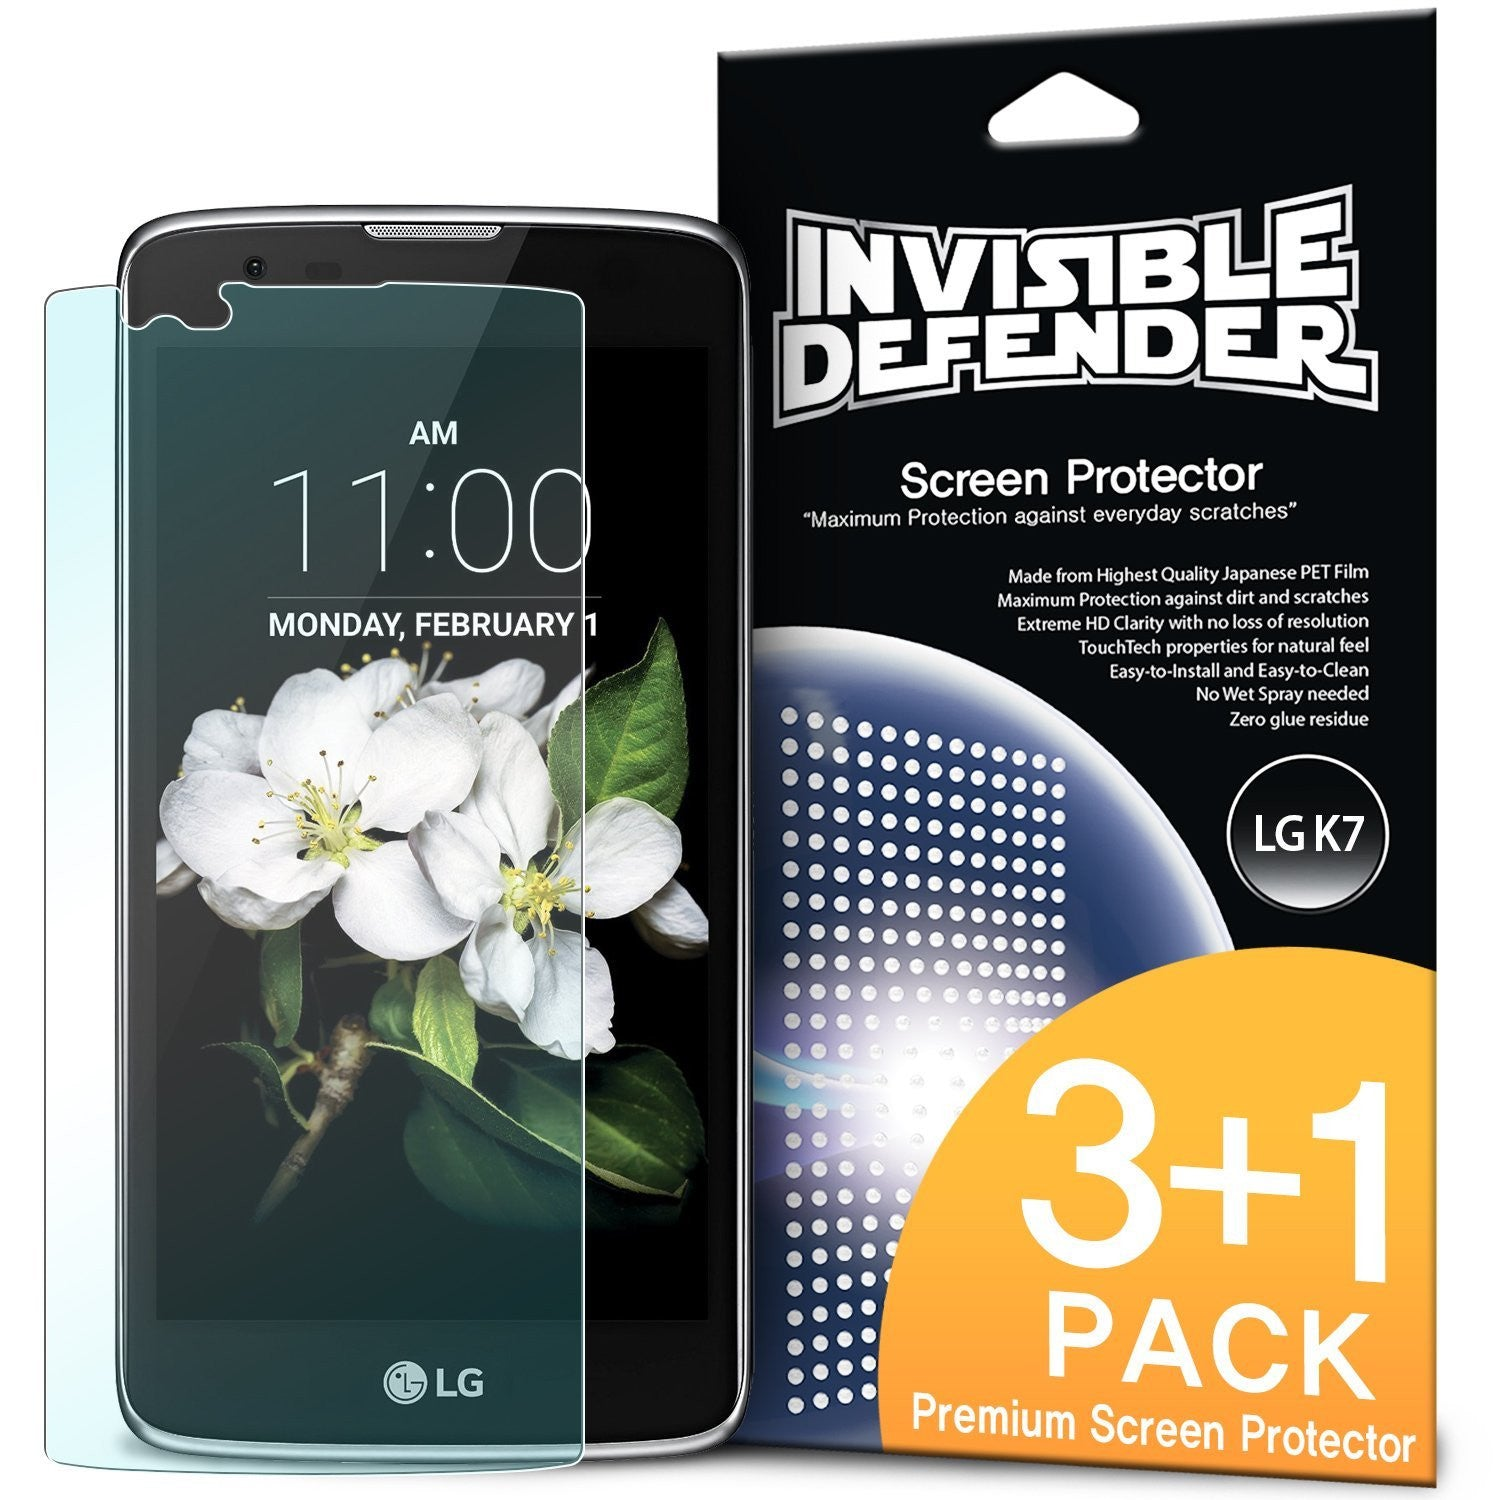 lg v10, ringke invisible defender 3+1 pack screen protector